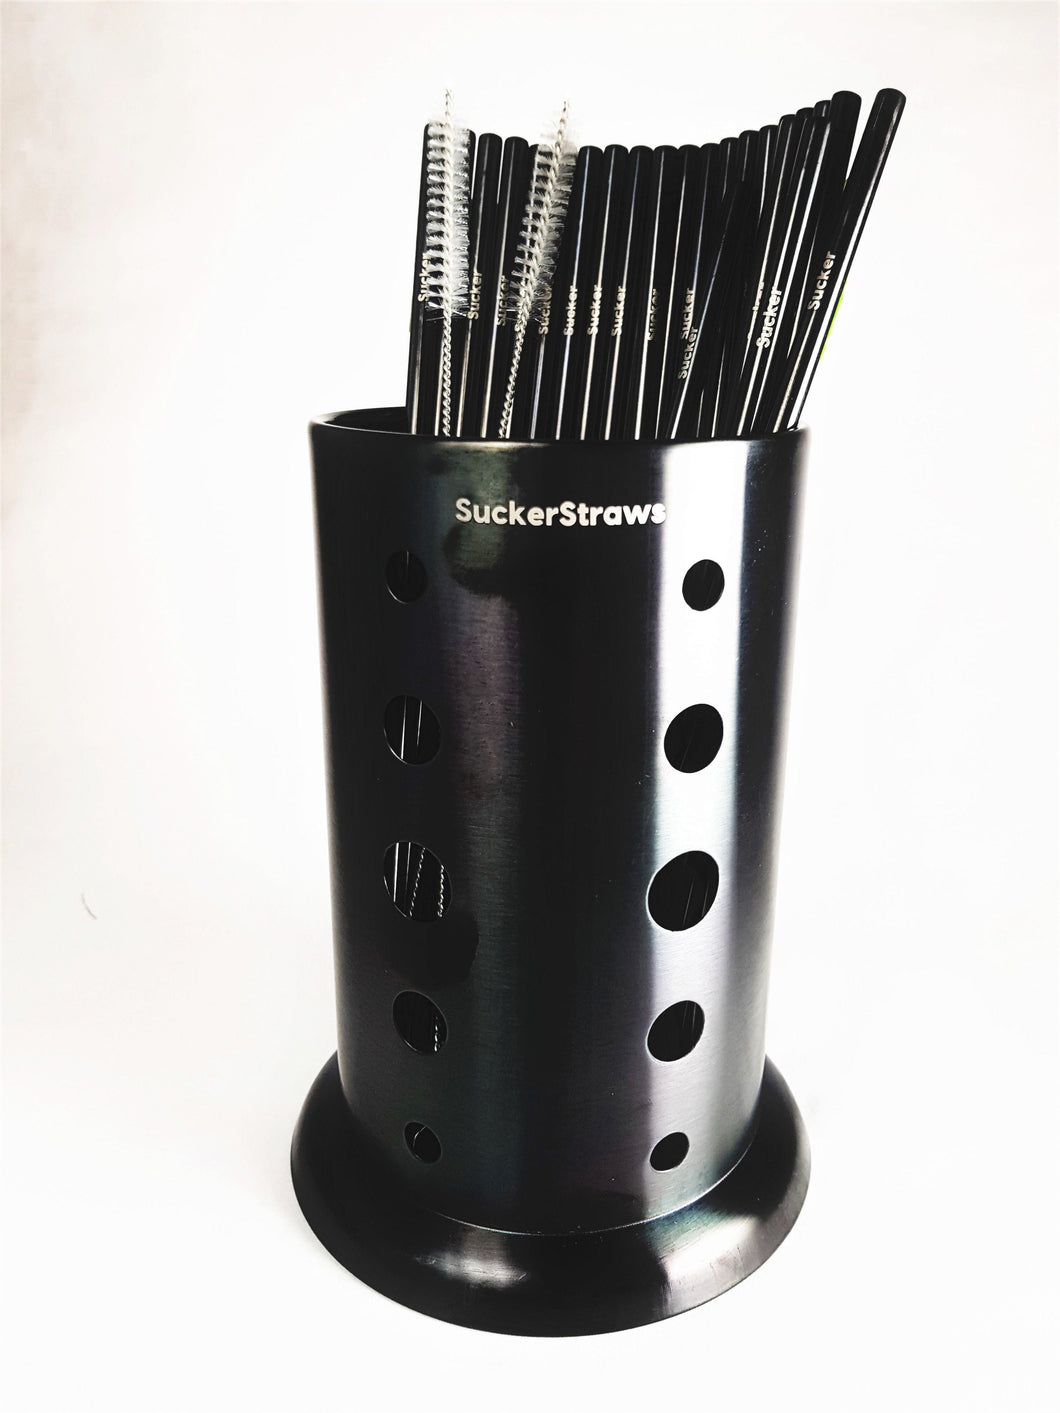 Reusable Metal Straw Large Venue Starter Set - Product photo for Large Venue Starter Set showing the SuckerStraws glasswasher washing basket with metal straws and cleaning brushes displayed  SuckerStraws are bulk wholesale reusable metal straws for bars and restaurants available worldwide.